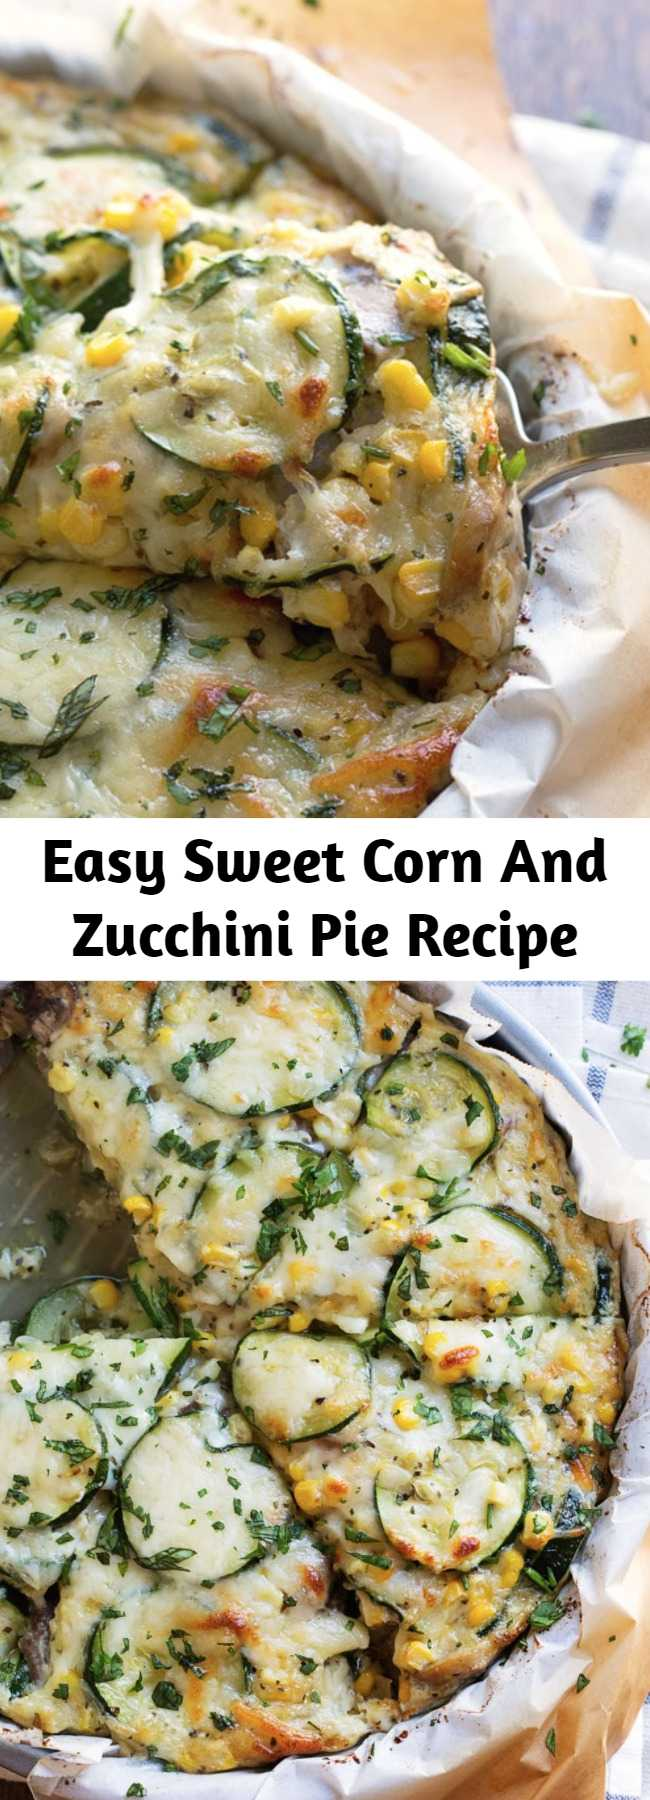 Easy Sweet Corn And Zucchini Pie Recipe - This crustless Sweet Corn and Zucchini Pie is so incredibly simple to make and it's the perfect way to enjoy summer produce! #corn #zucchini #summer #pie #cheese